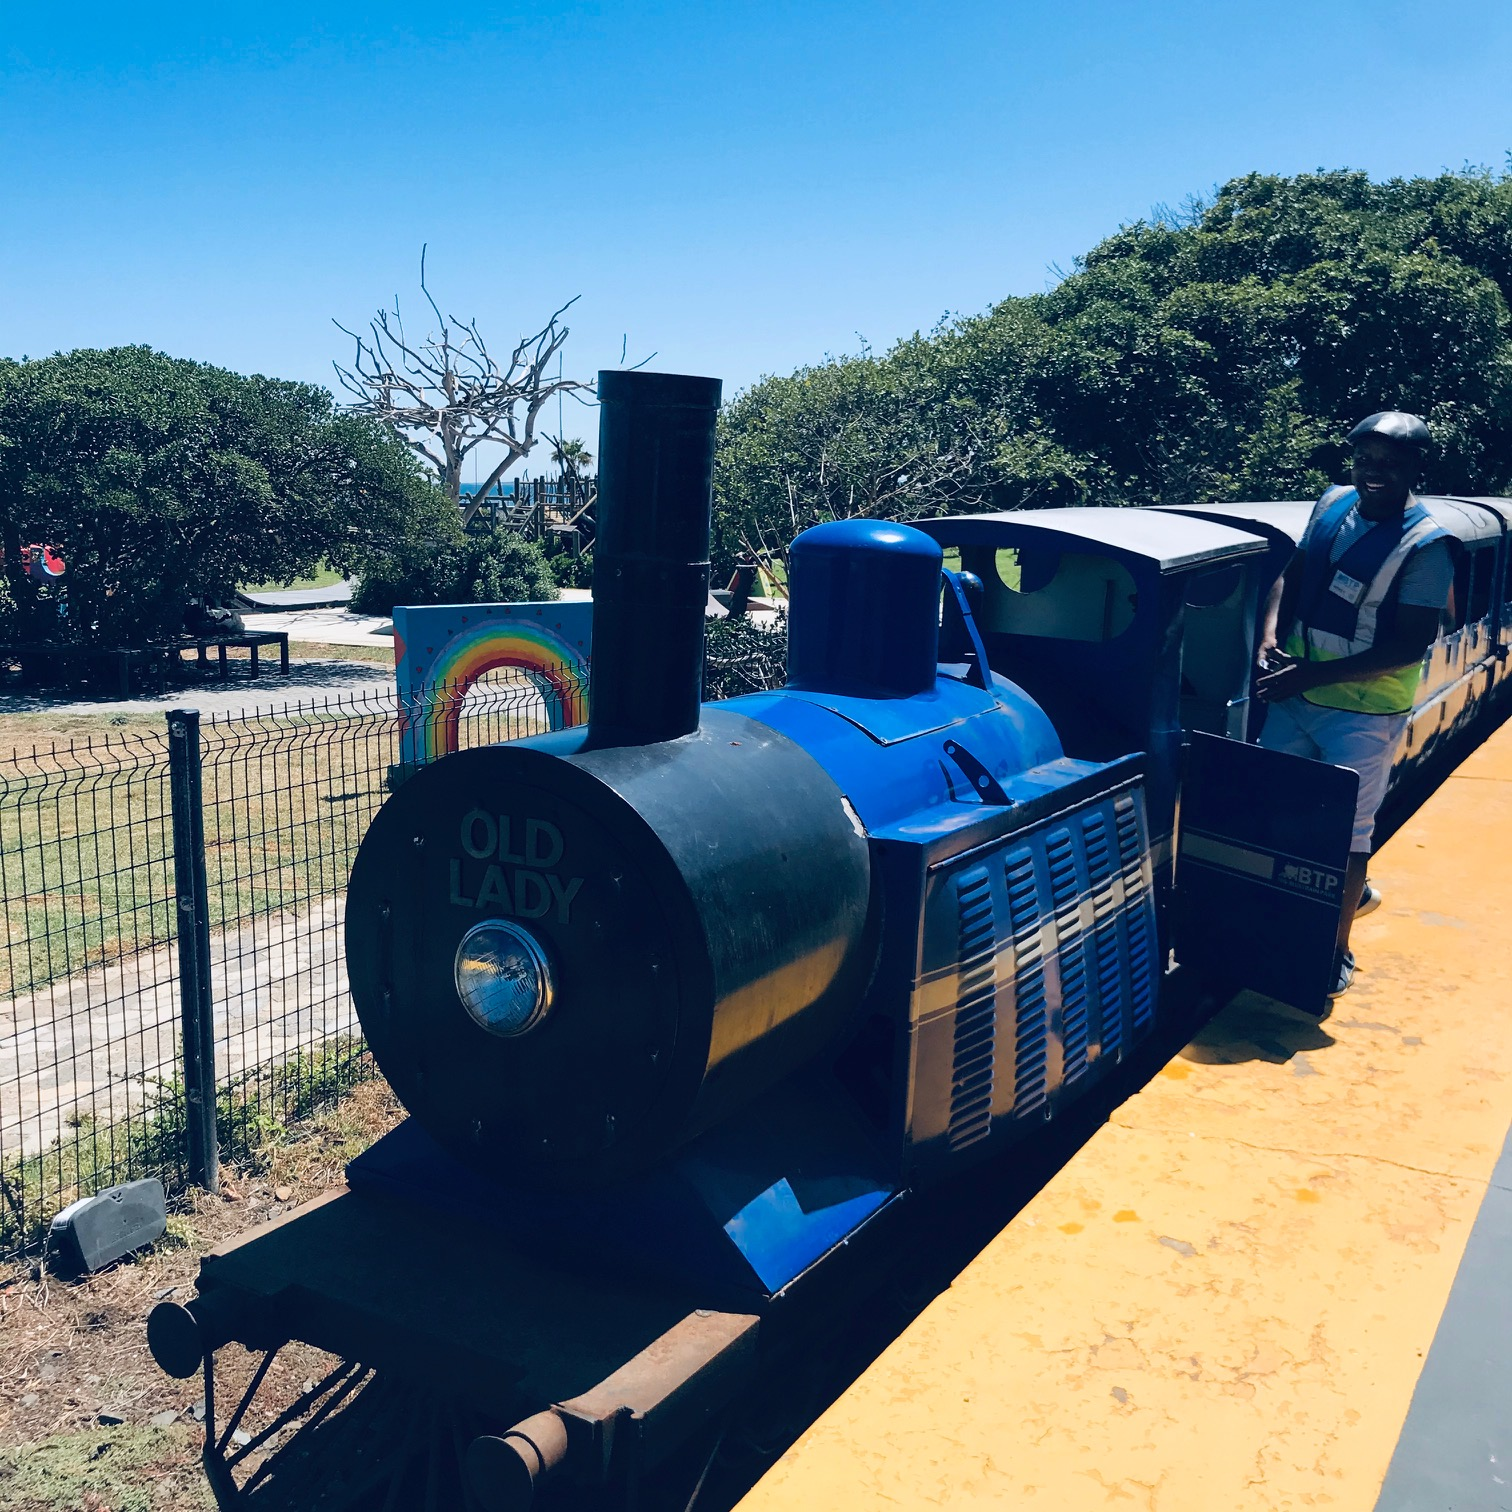 The Old Lady, Blue Train Park, Mouille Point